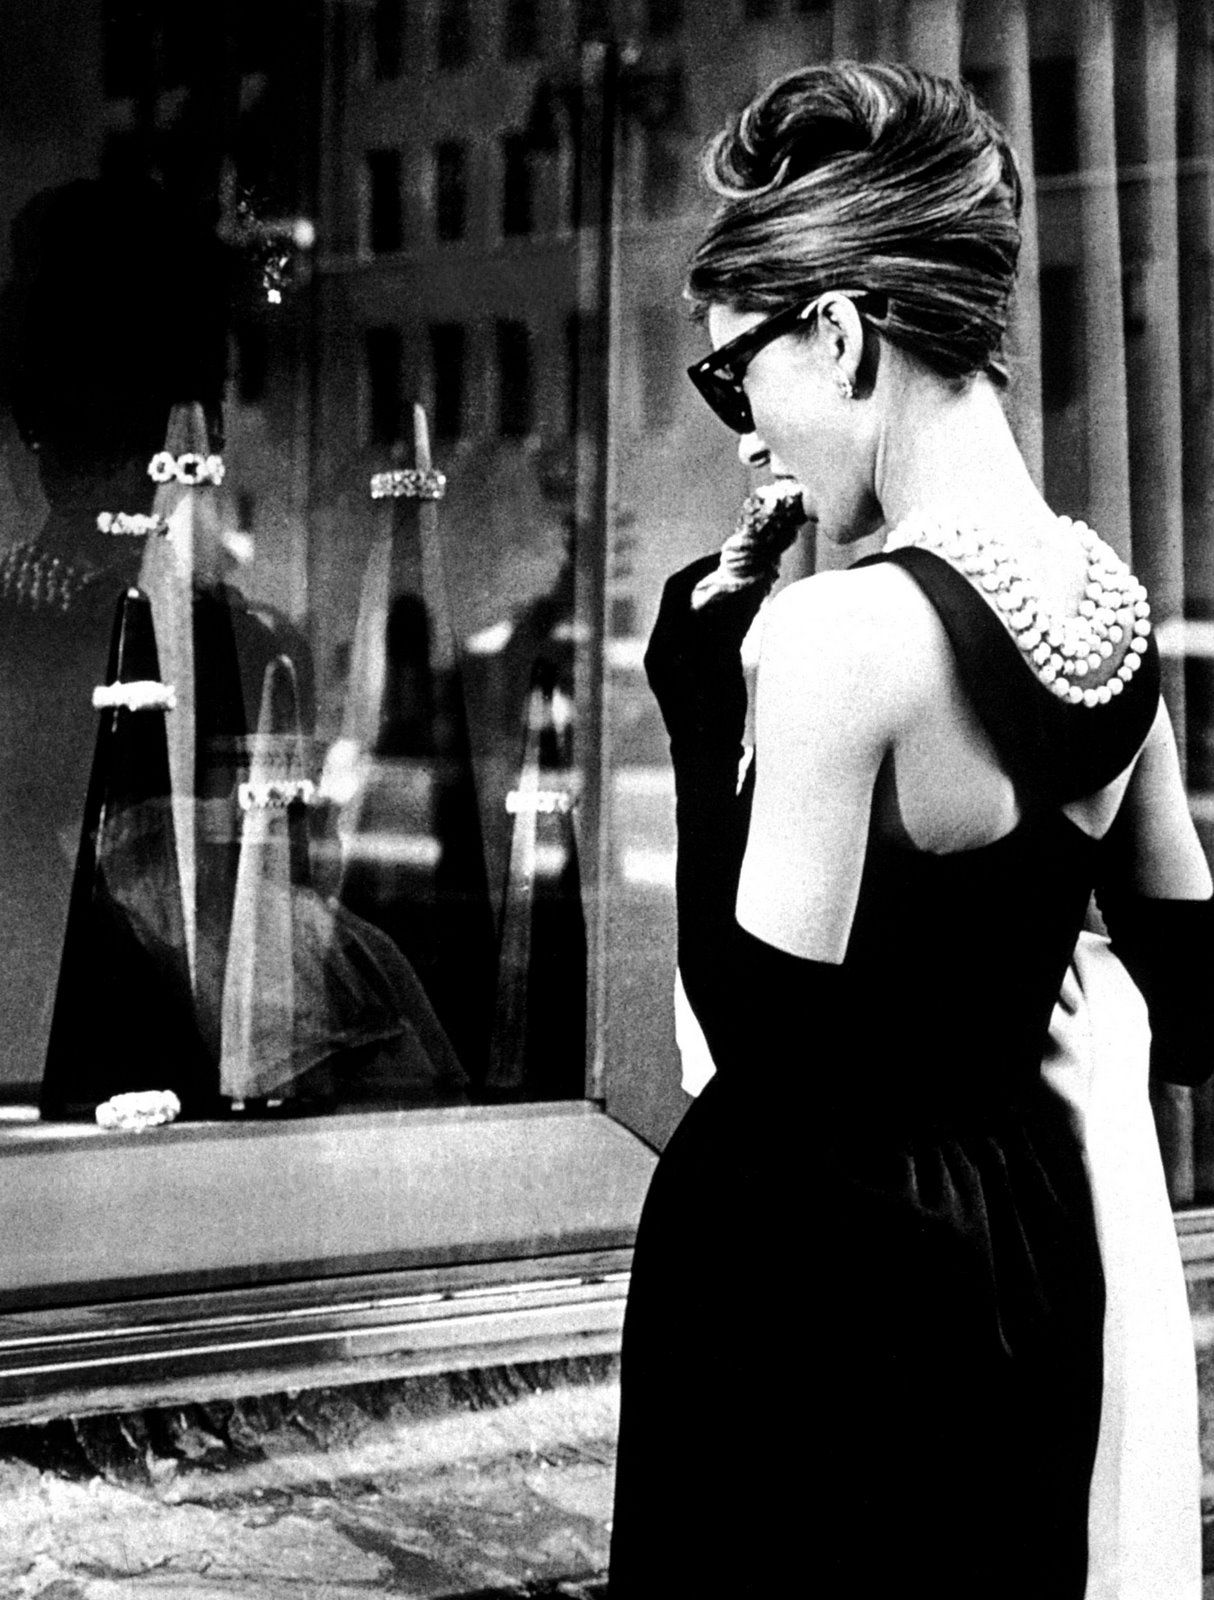 One of the most iconic fashion/film images.